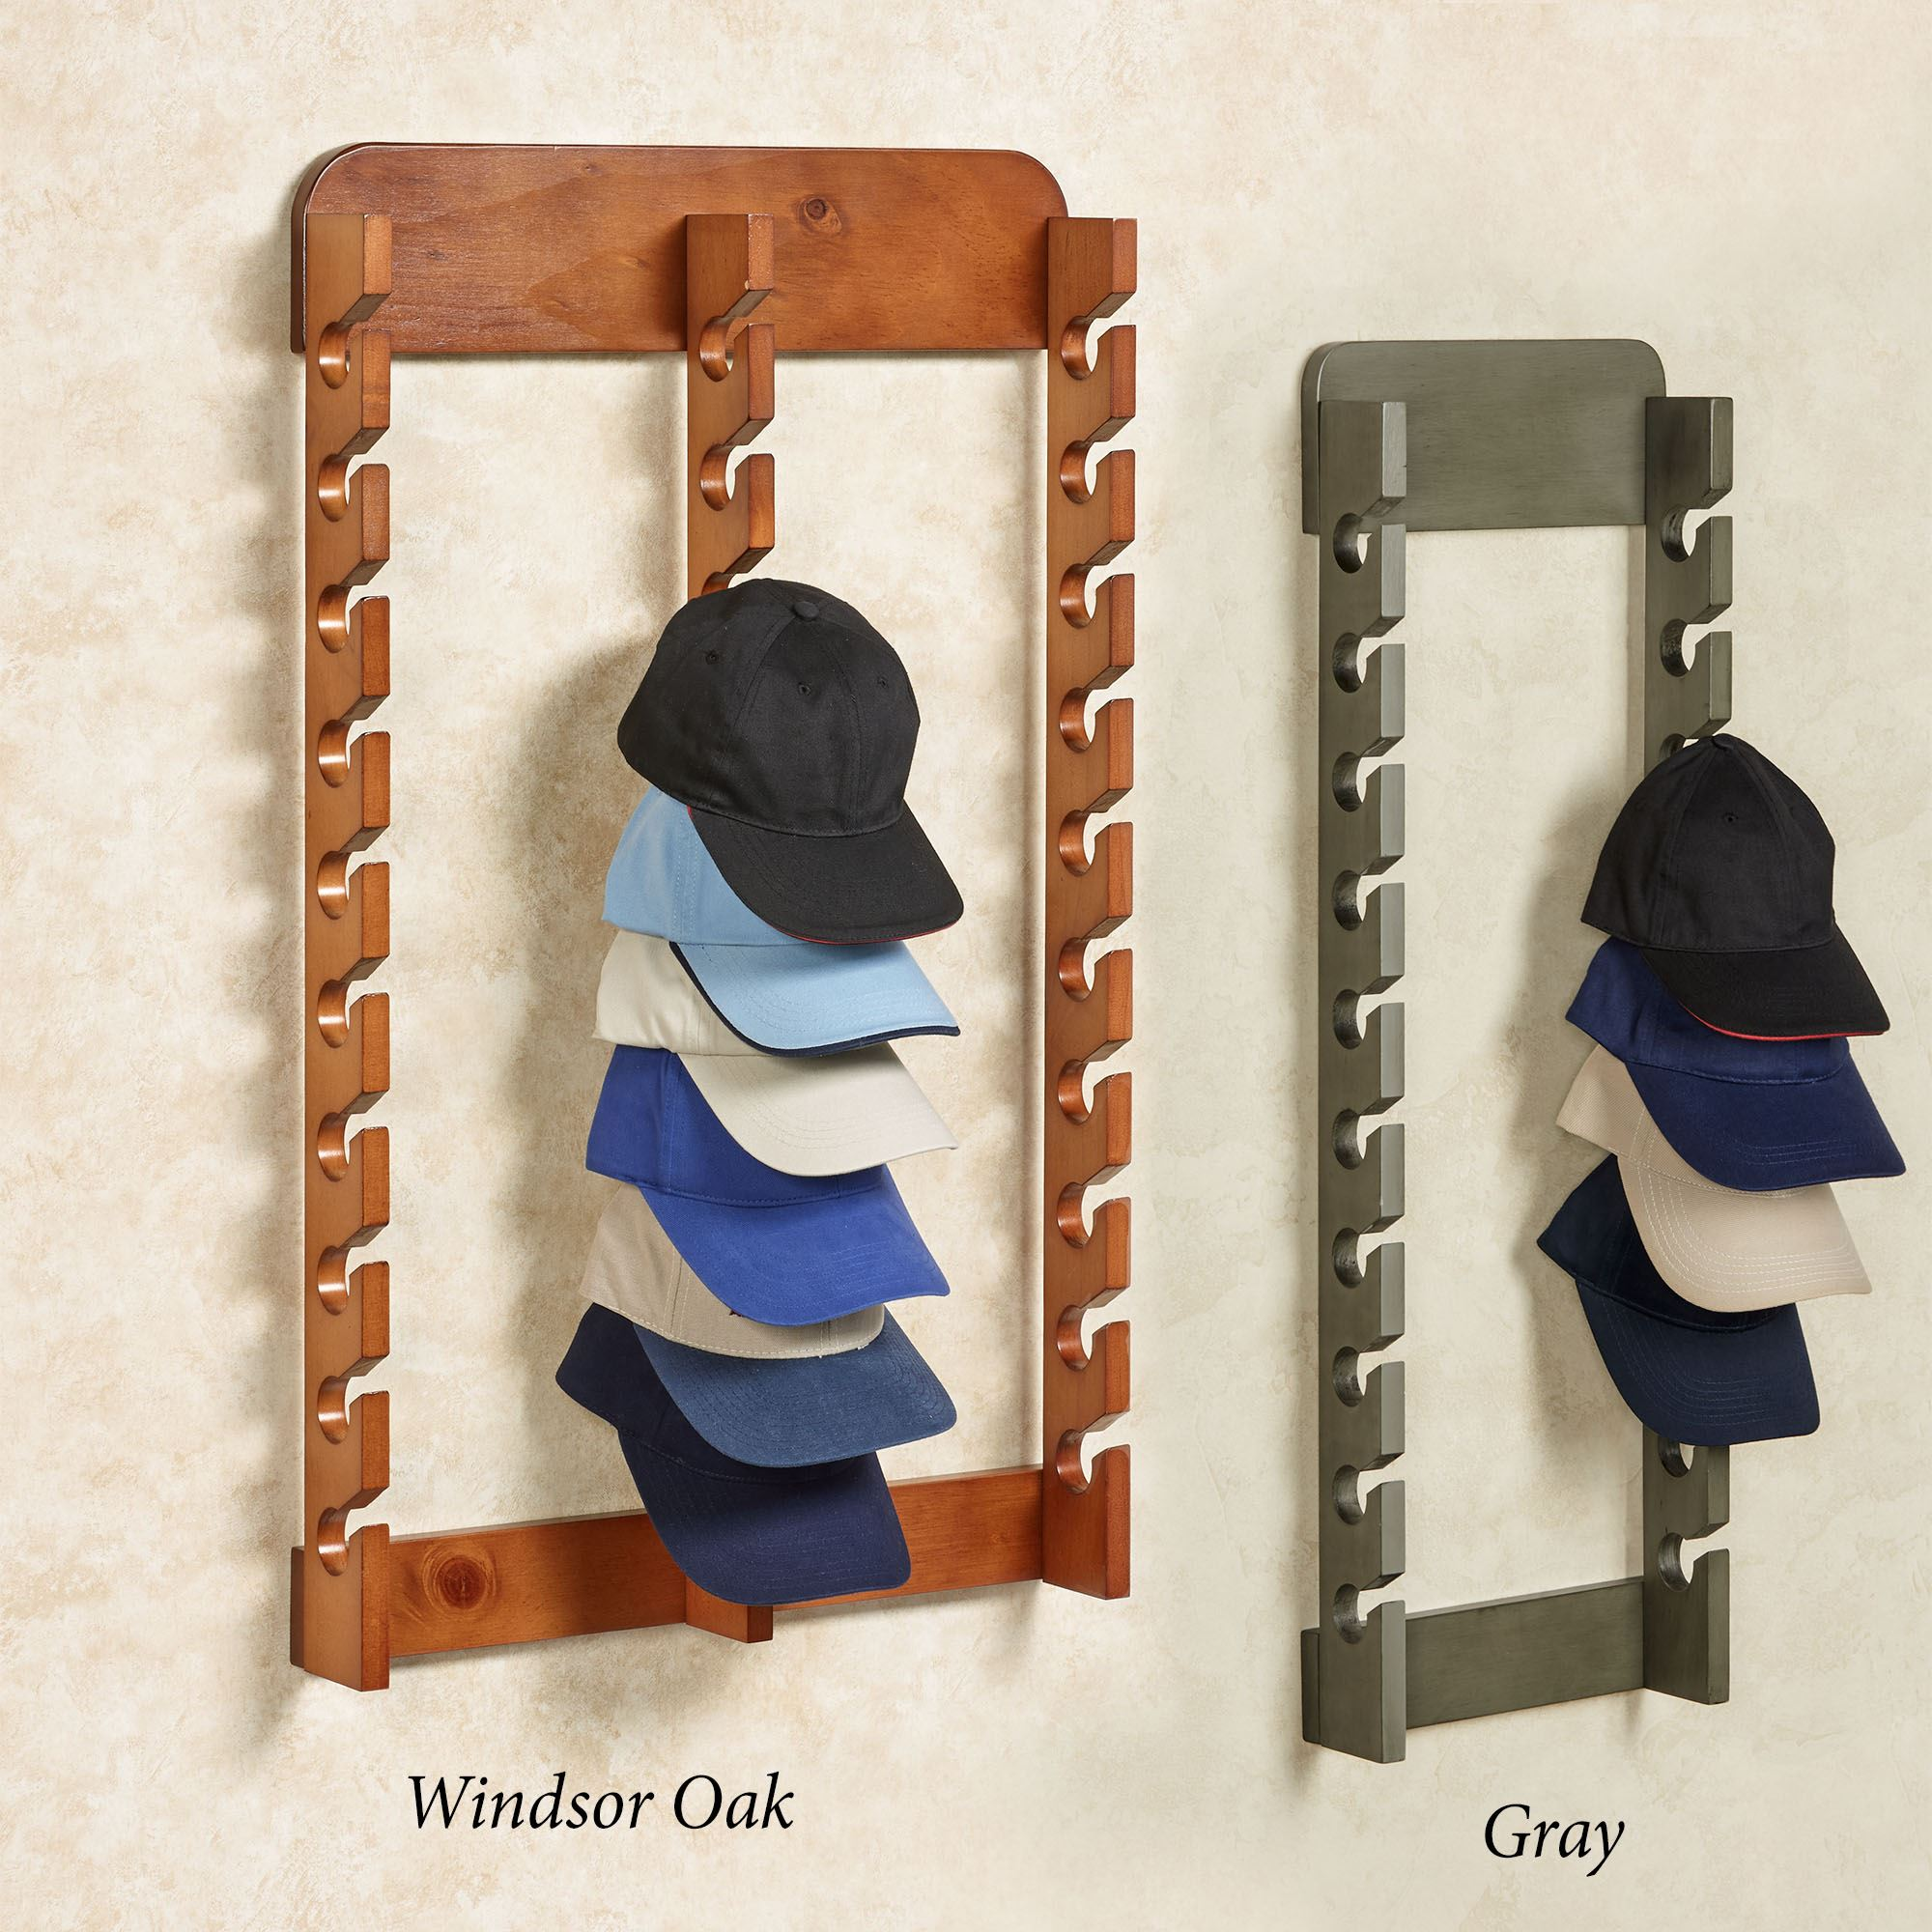 Hat Holders For Walls Wood Cap Display Wall Rack Holds Up To 30 Hats